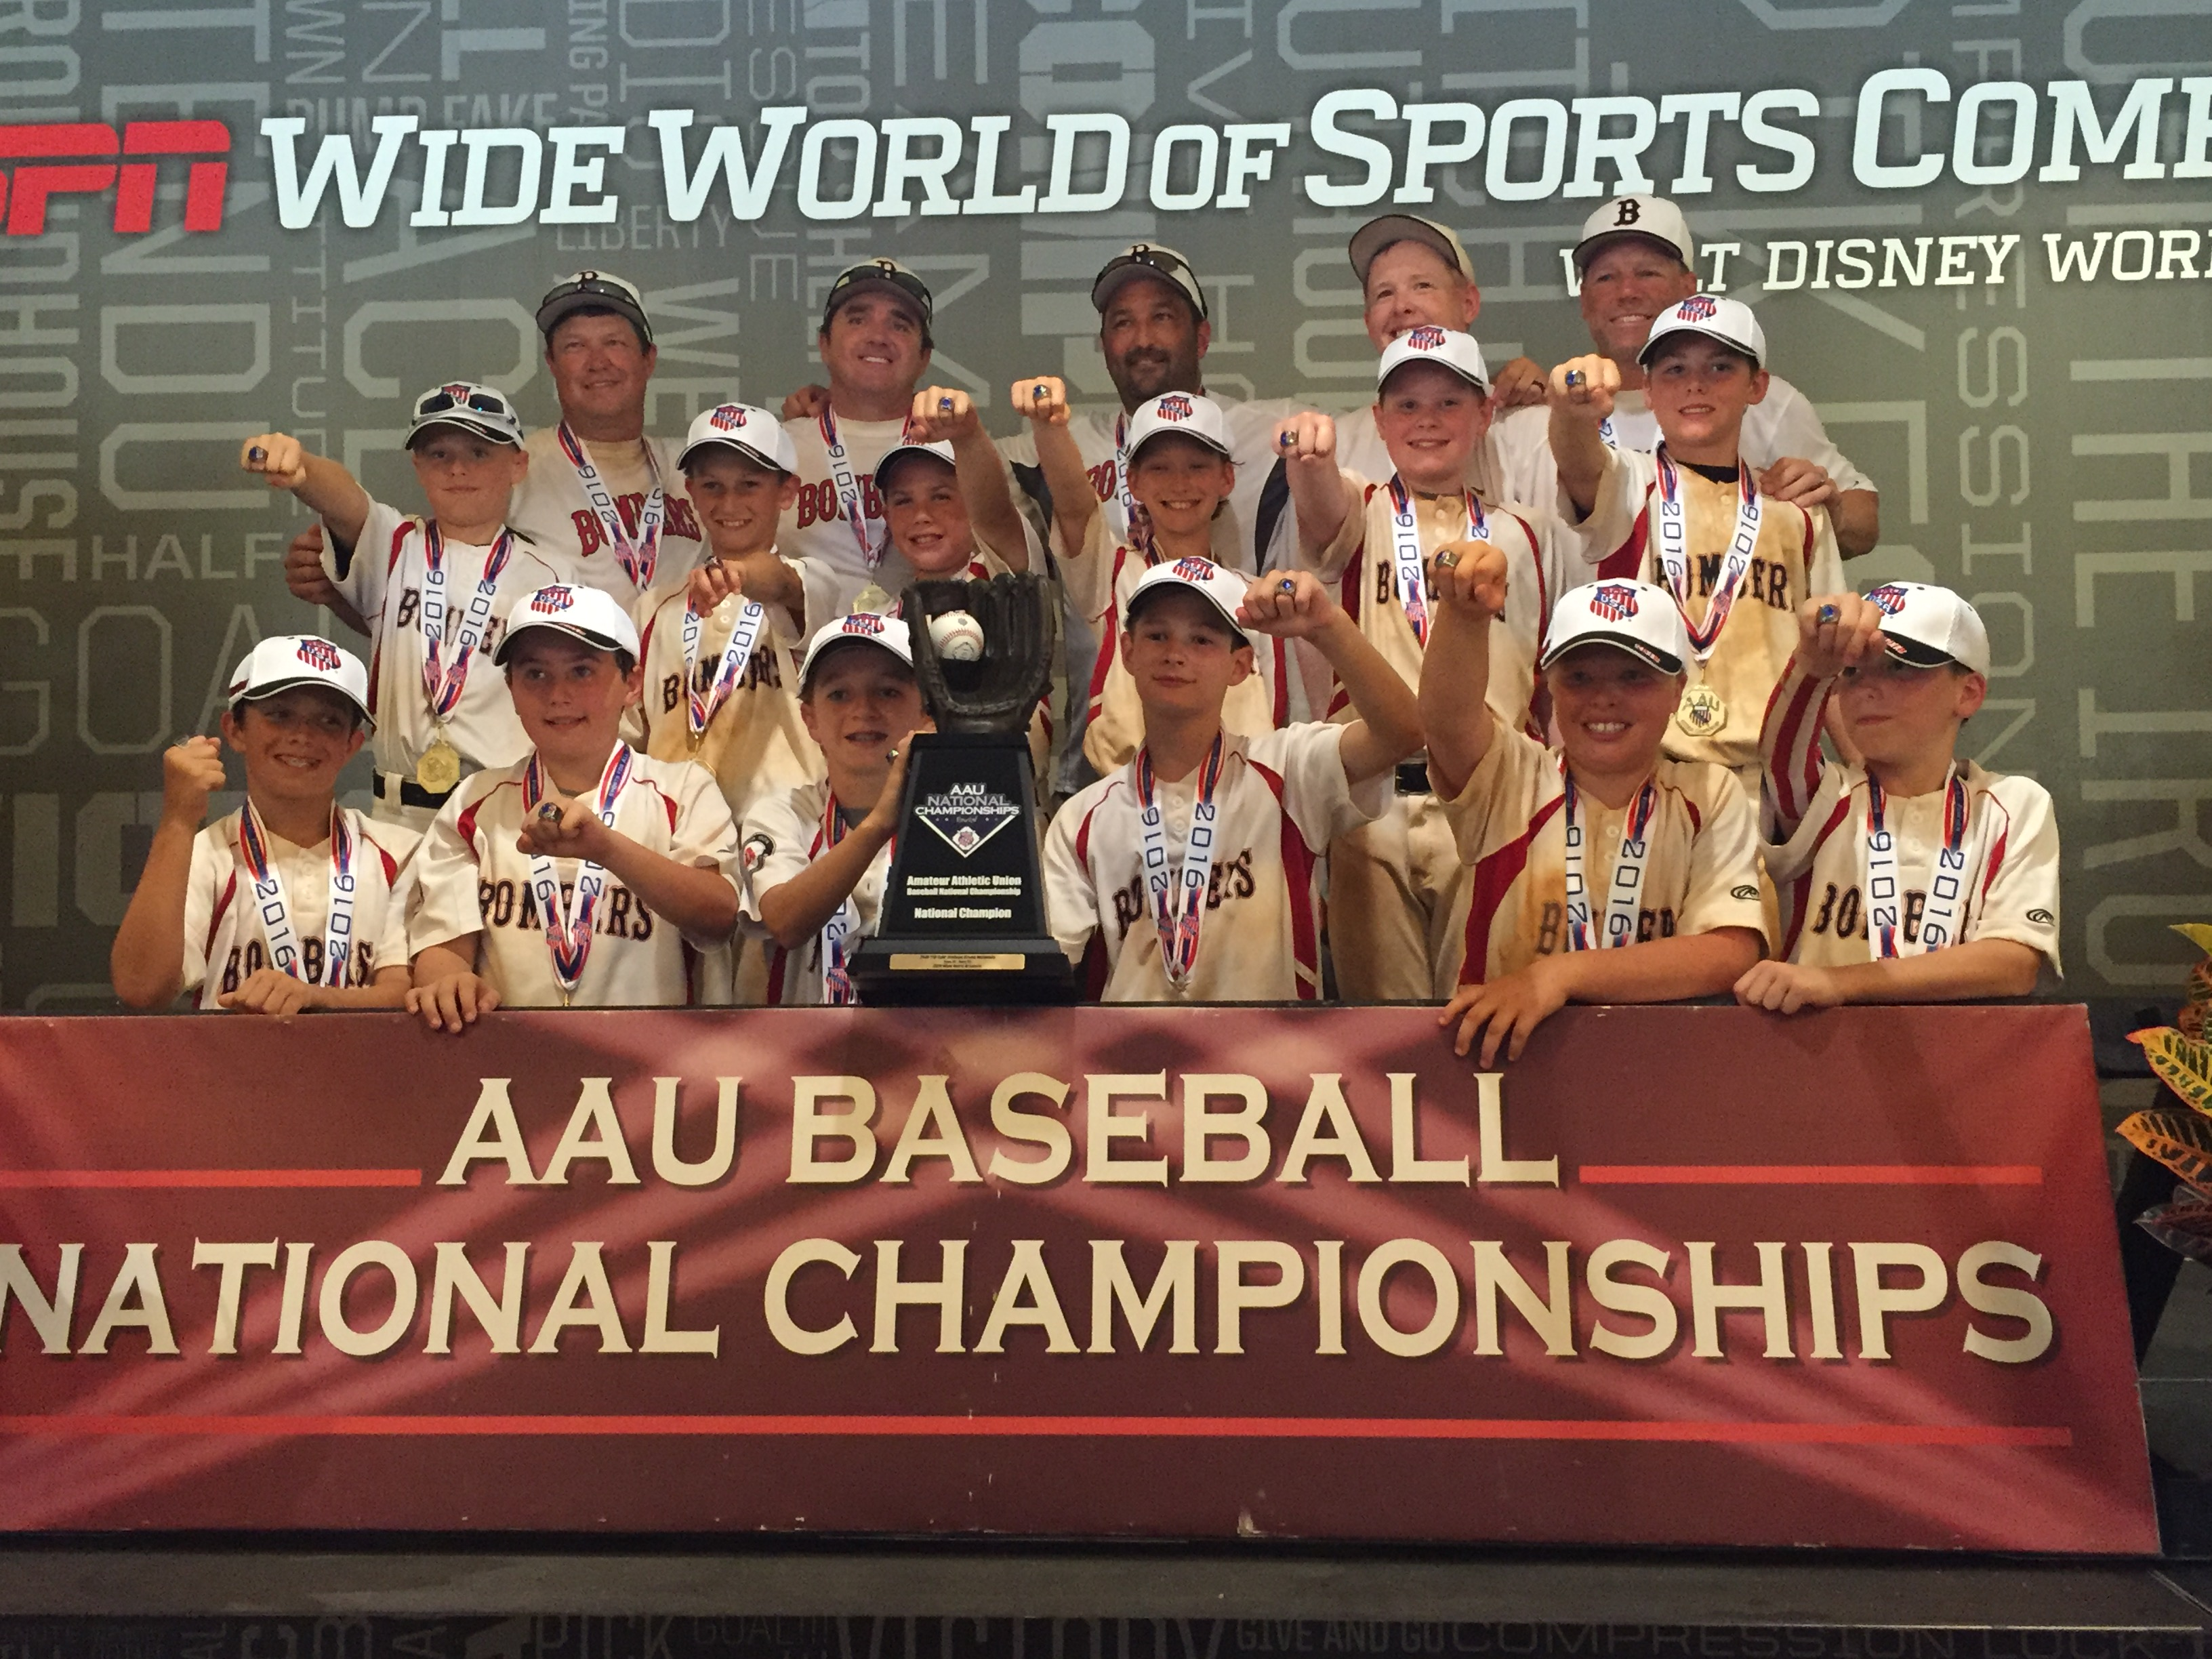 Bombers 11U (McNeillie) wins AAU National Championship